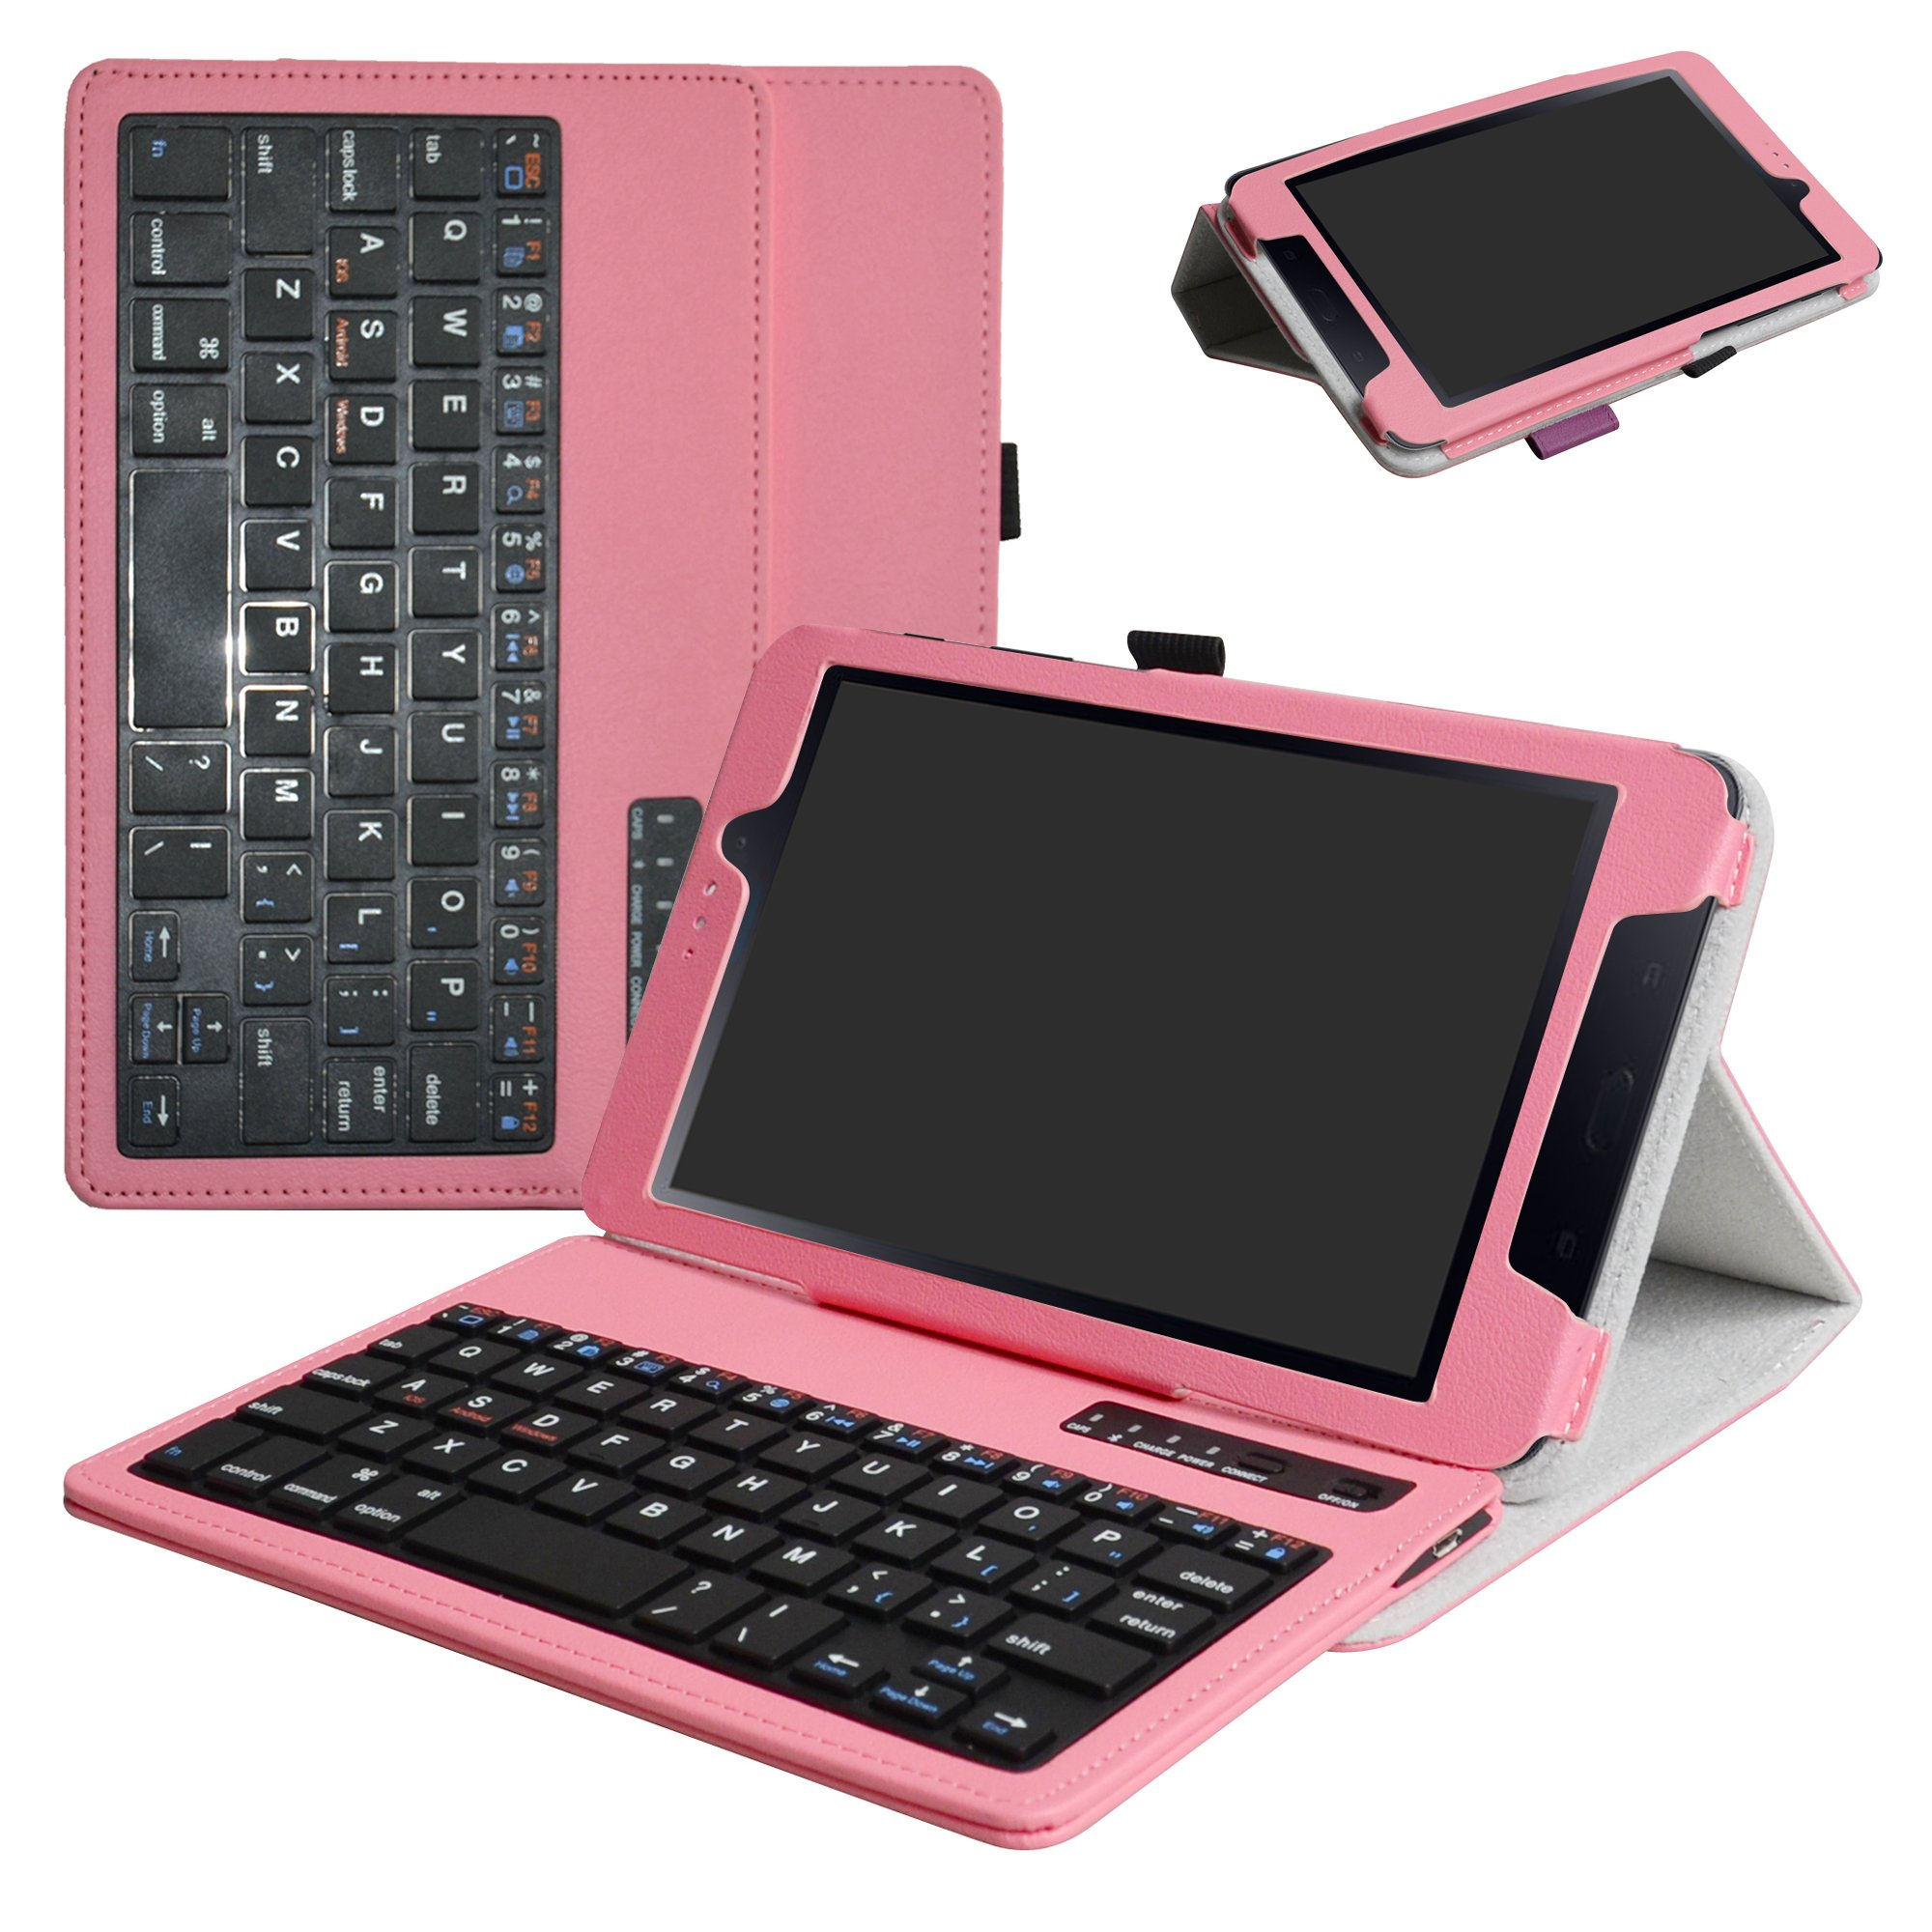 Samsung Galaxy Tab A 8.0 2017 Bluetooth Keyboard Case,Mama Mouth Slim Stand PU Leather Cover with Romovable Bluetooth Keyboard for Samsung Galaxy Tab A2 S/Tab A 8.0 SM-T380 T385 Tablet,Pink